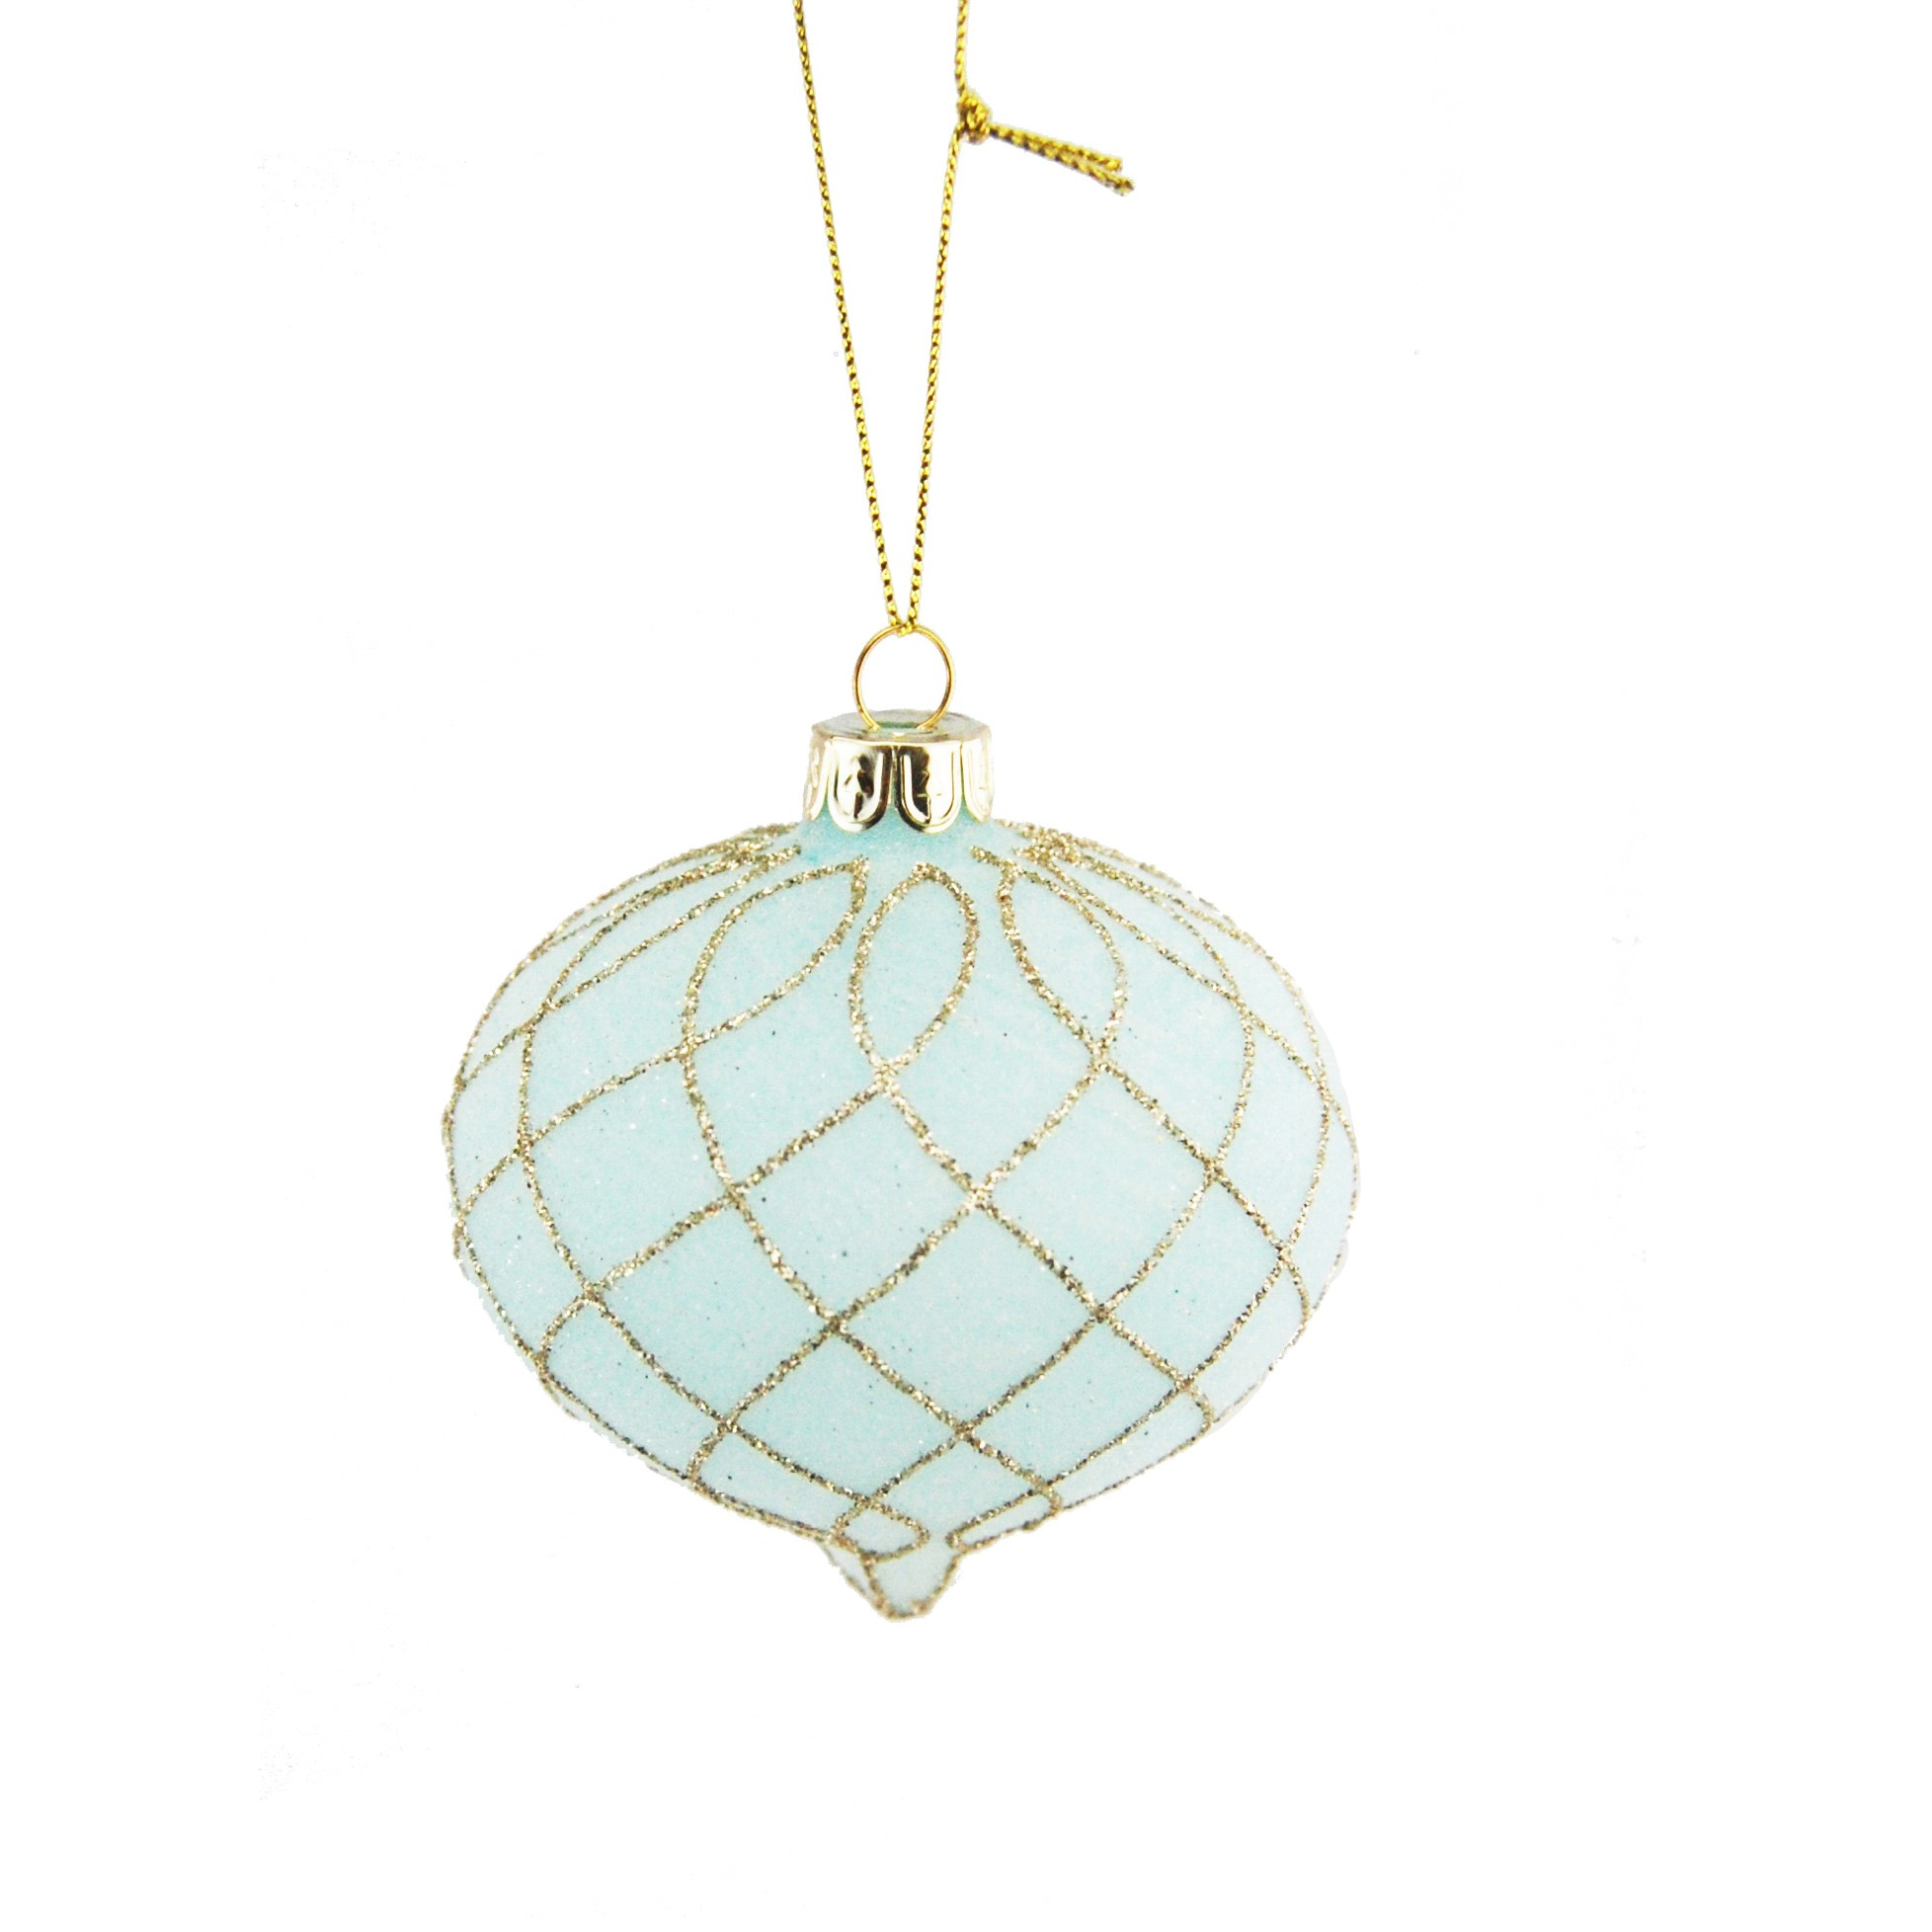 HANG. TEAL/GOLD GLITTERED TEARDROP BAUBLE 8cm